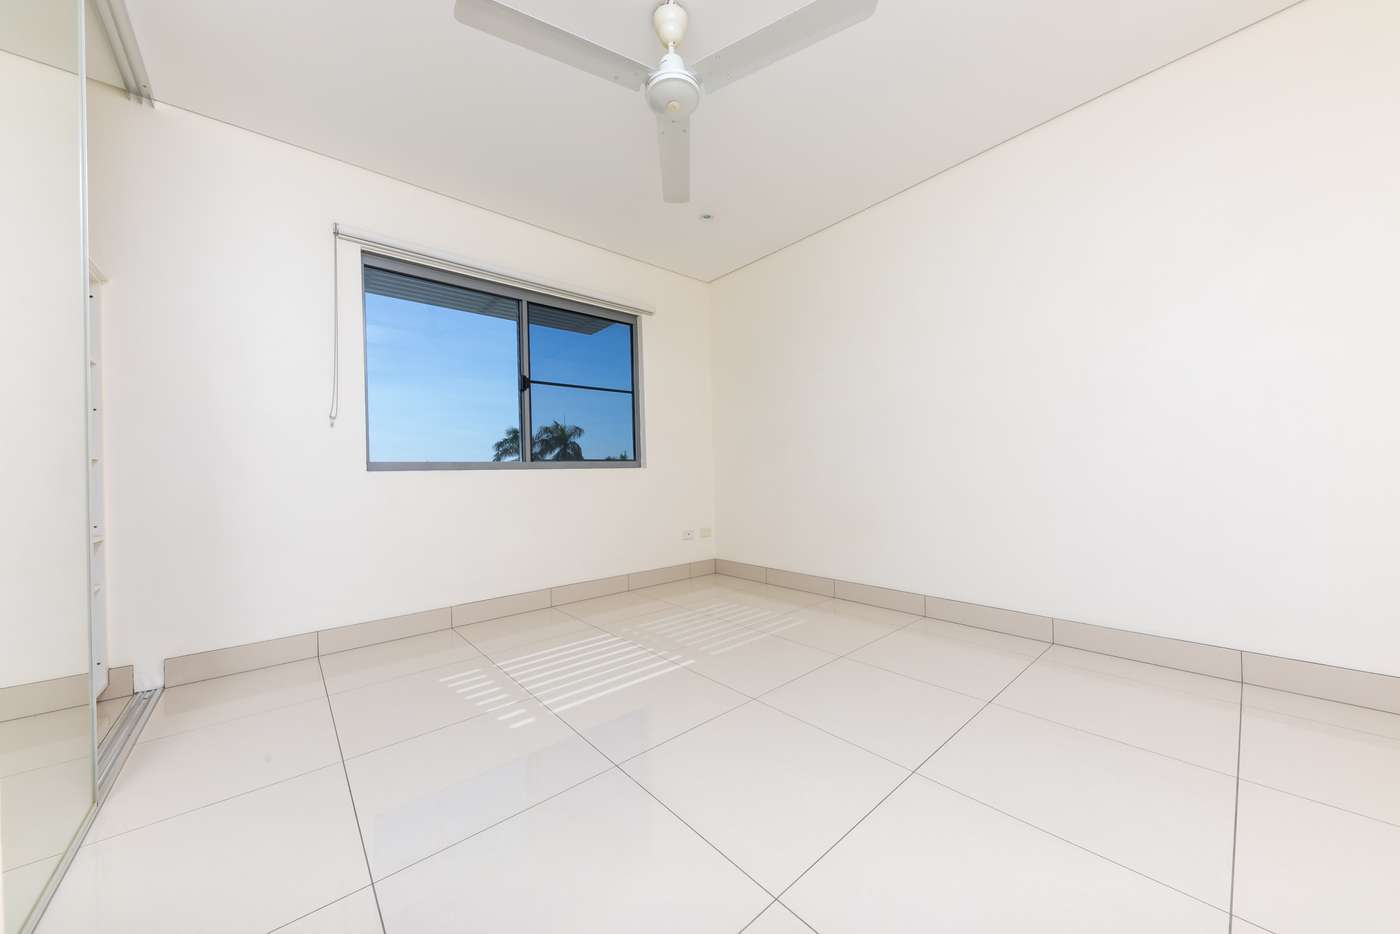 Sixth view of Homely unit listing, 5/6 Warrego Court, Larrakeyah NT 820